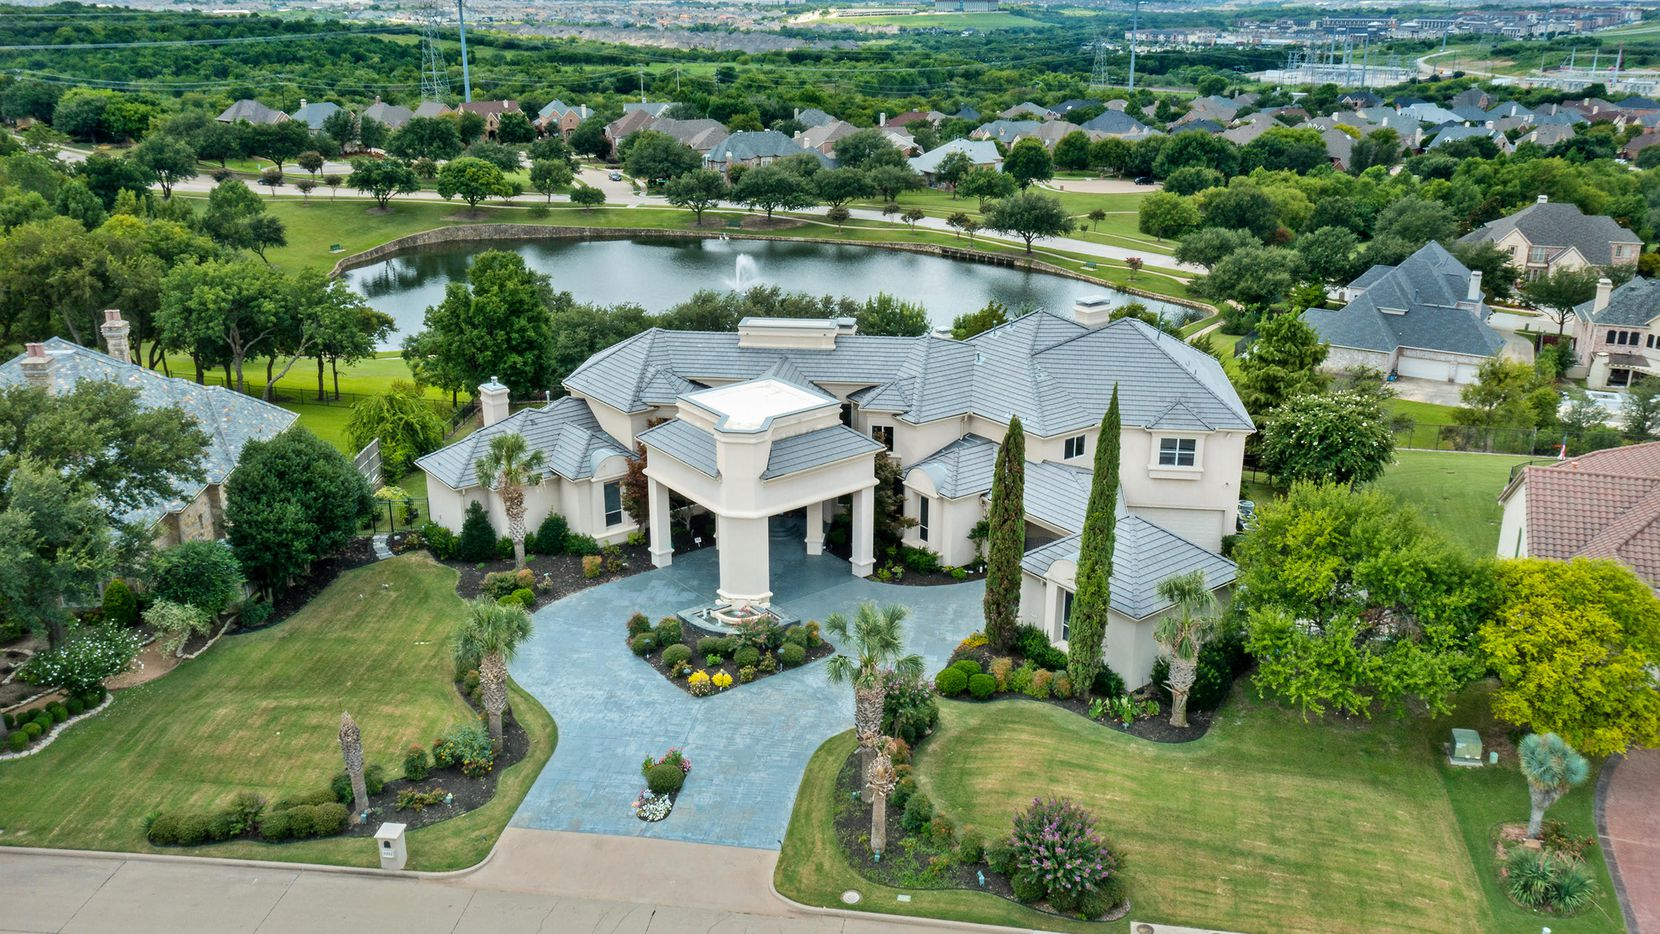 The estate at 6441 Sudbury Road in Plano's guard-gated Kings Gate is offered at $2,850,000.